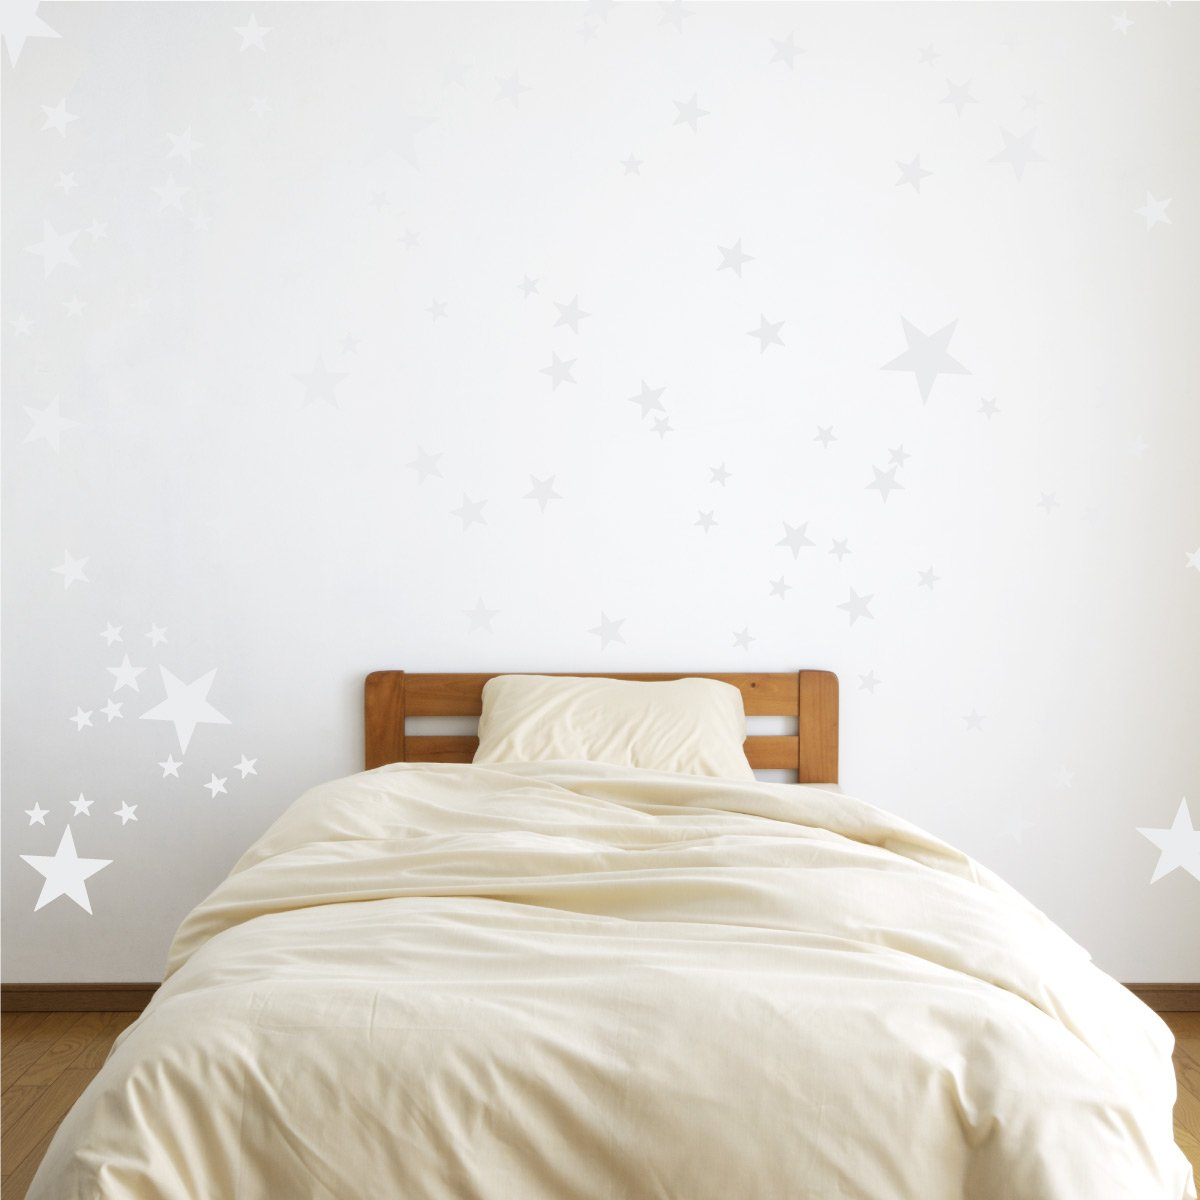 Vinyl Star Wall Decal Stickers for Home Wall Decor Night Sky Removable Graphic Transfers for Nursery or Kids Room (White, 24x27 inches)